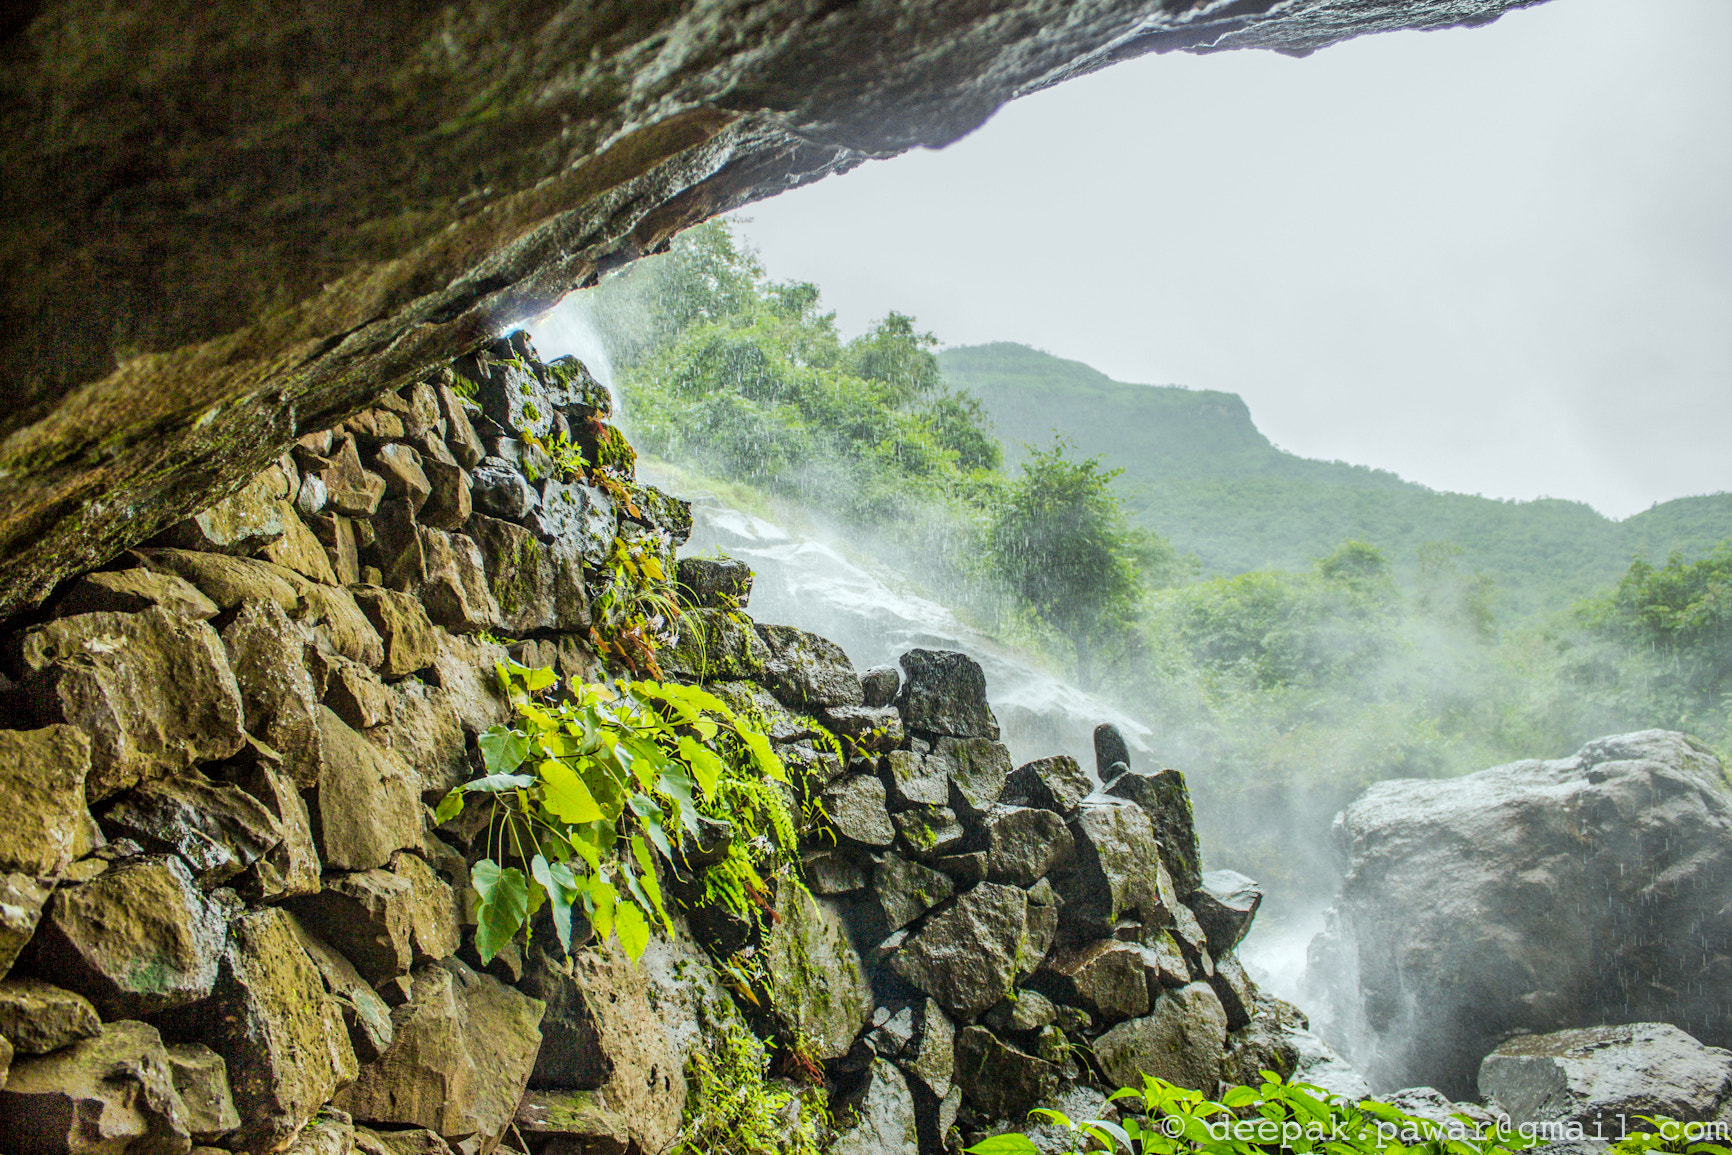 Photograph Clicking from under the waterfall by Deepak Pawar on 500px